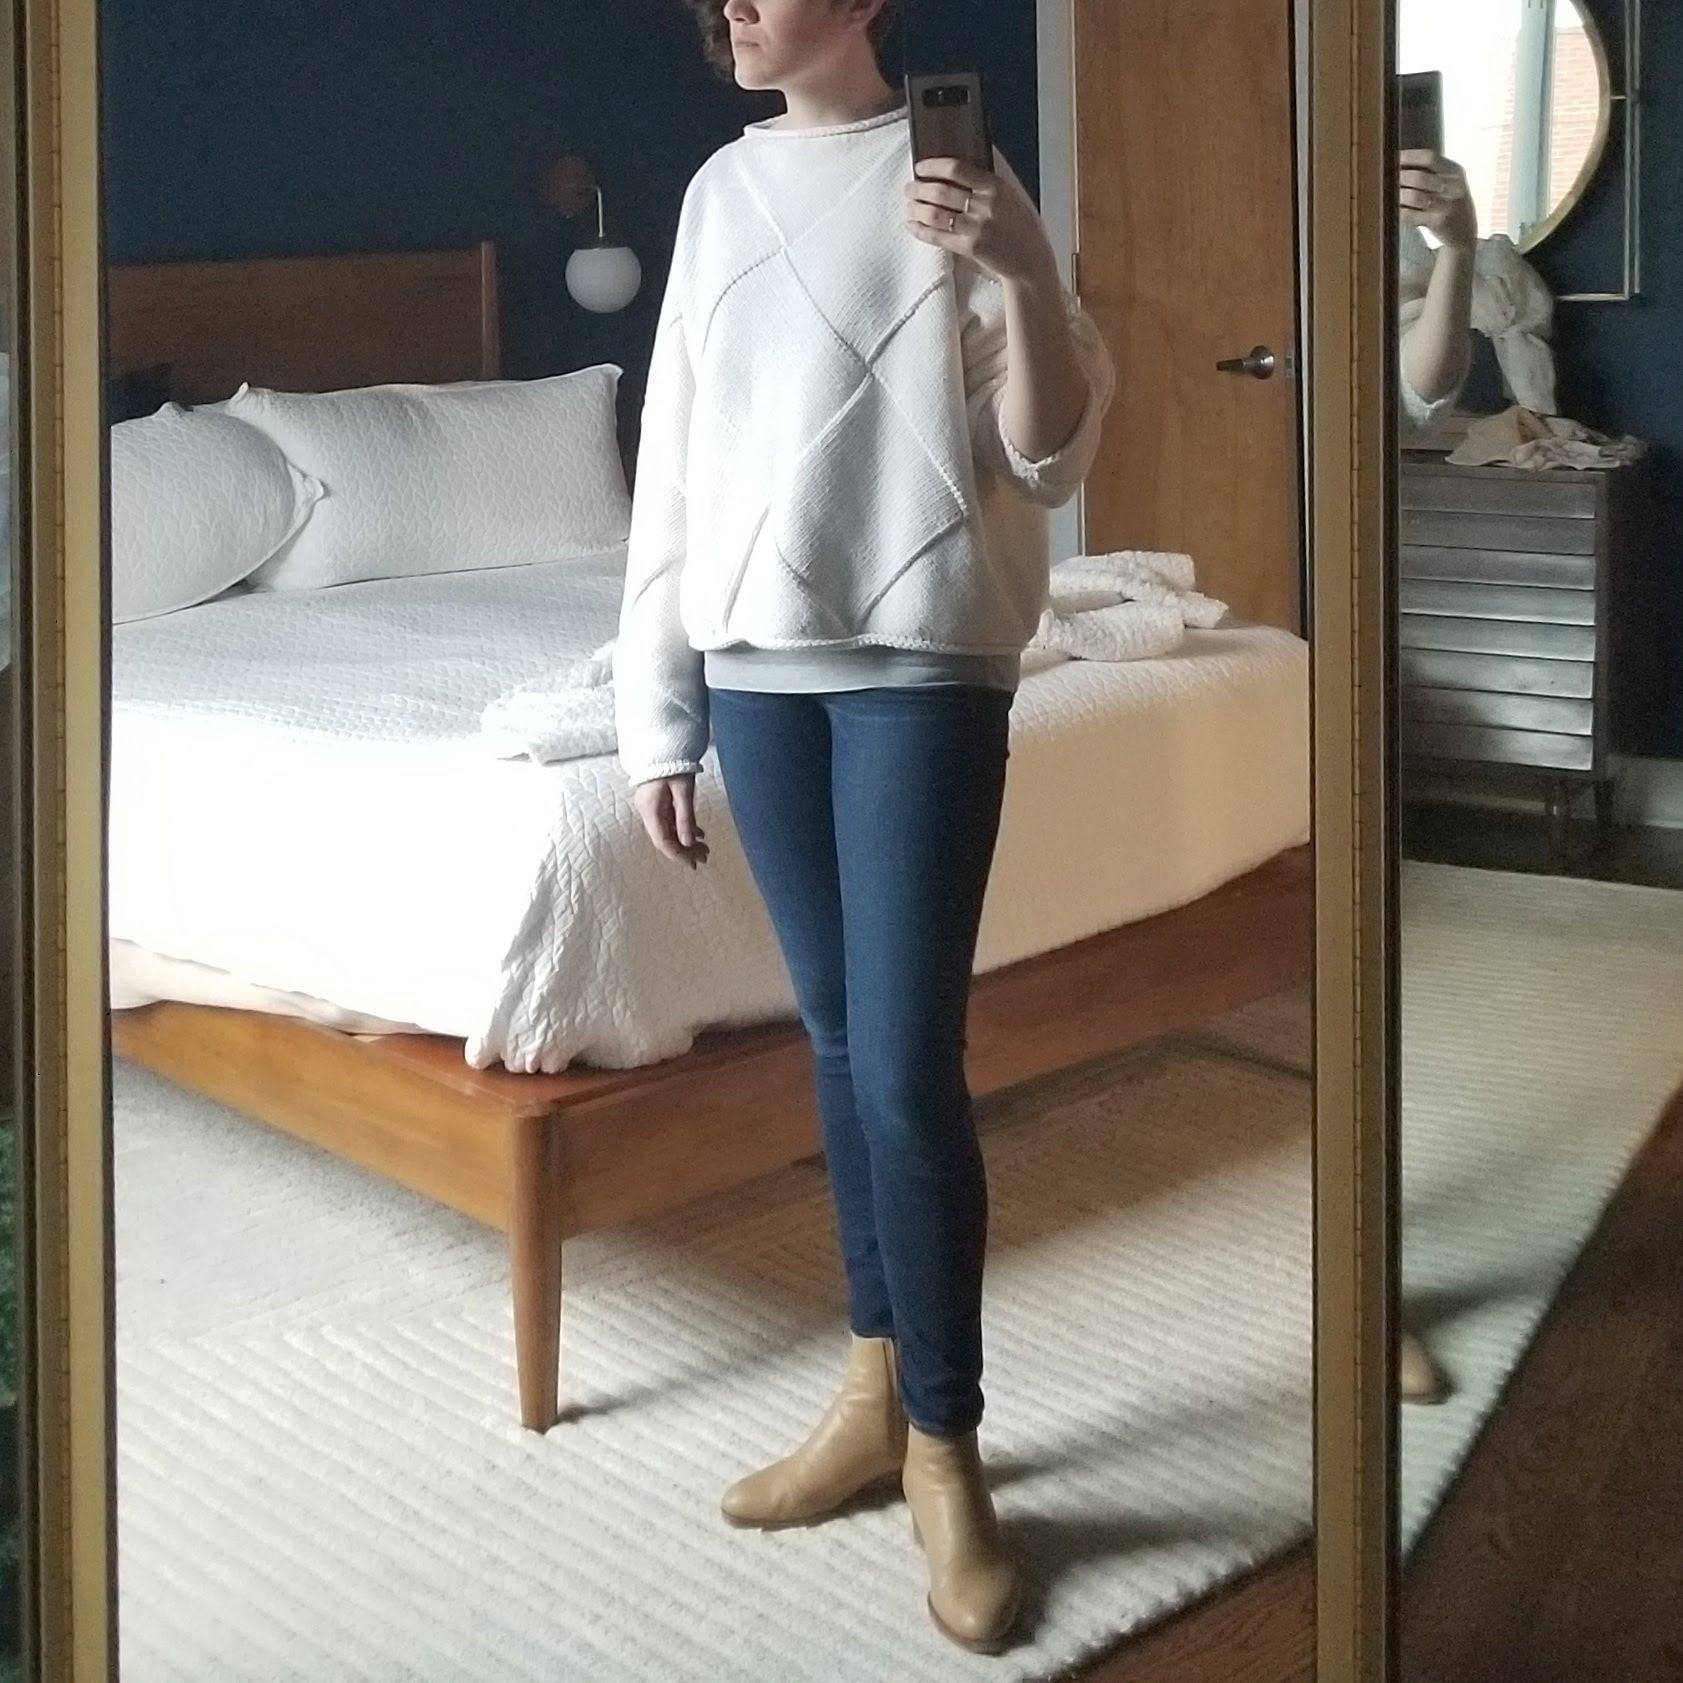 Monday - March 26, 2018Here it is, the Lauren Manoogian sweater. I'm wearing a fitted top underneath that I've allowed to peek out, which adds a little dimension and foundation to the sweater. The sleeves on the sweater are very roomy but taper to just the right width to allow me to push them up to my elbow for things like hand-washing without fear of soiling the sleeve. With this being white, I will need to take extra care not to rub the sleeves on random surfaces. It's that kind of soiling more than blatant stains that make white look dingier than it should. This might be the last time I get to wear this sweater til the fall but that's OK! I'm so happy with it. It's like wearing a blanket, both in weight and warmth. Just what I needed all winter, haha.